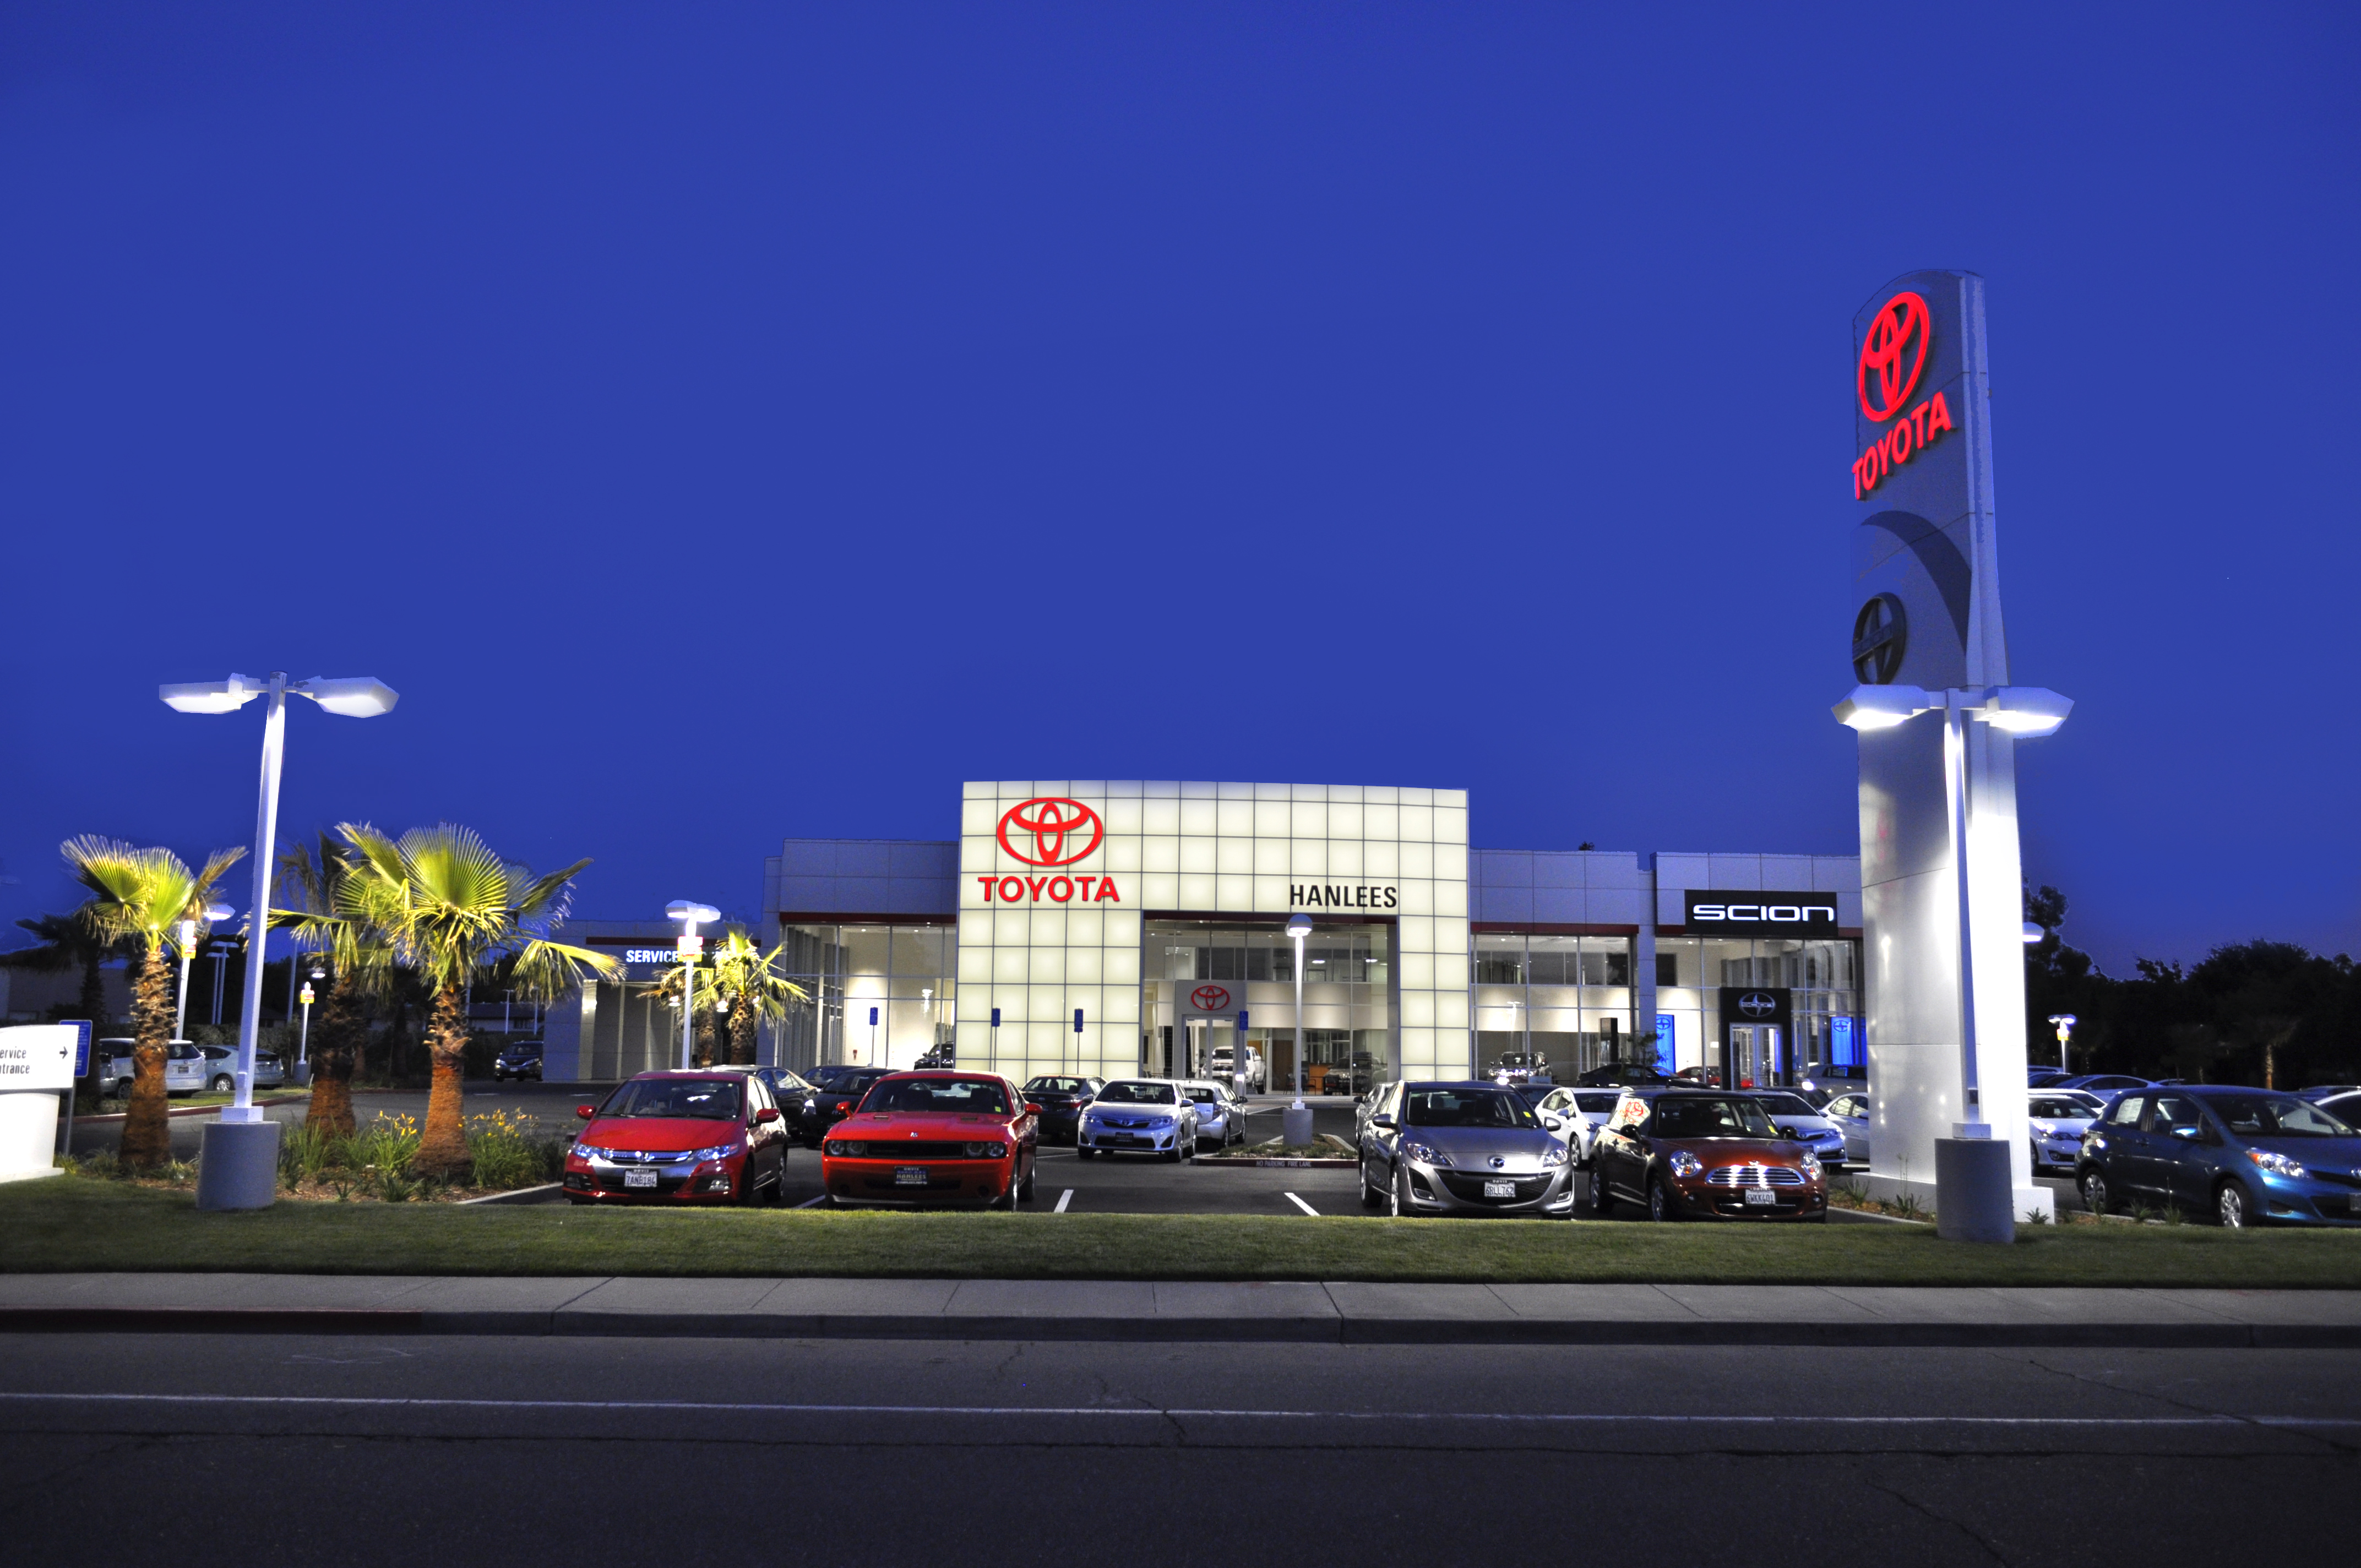 Dealership Exterior, Night